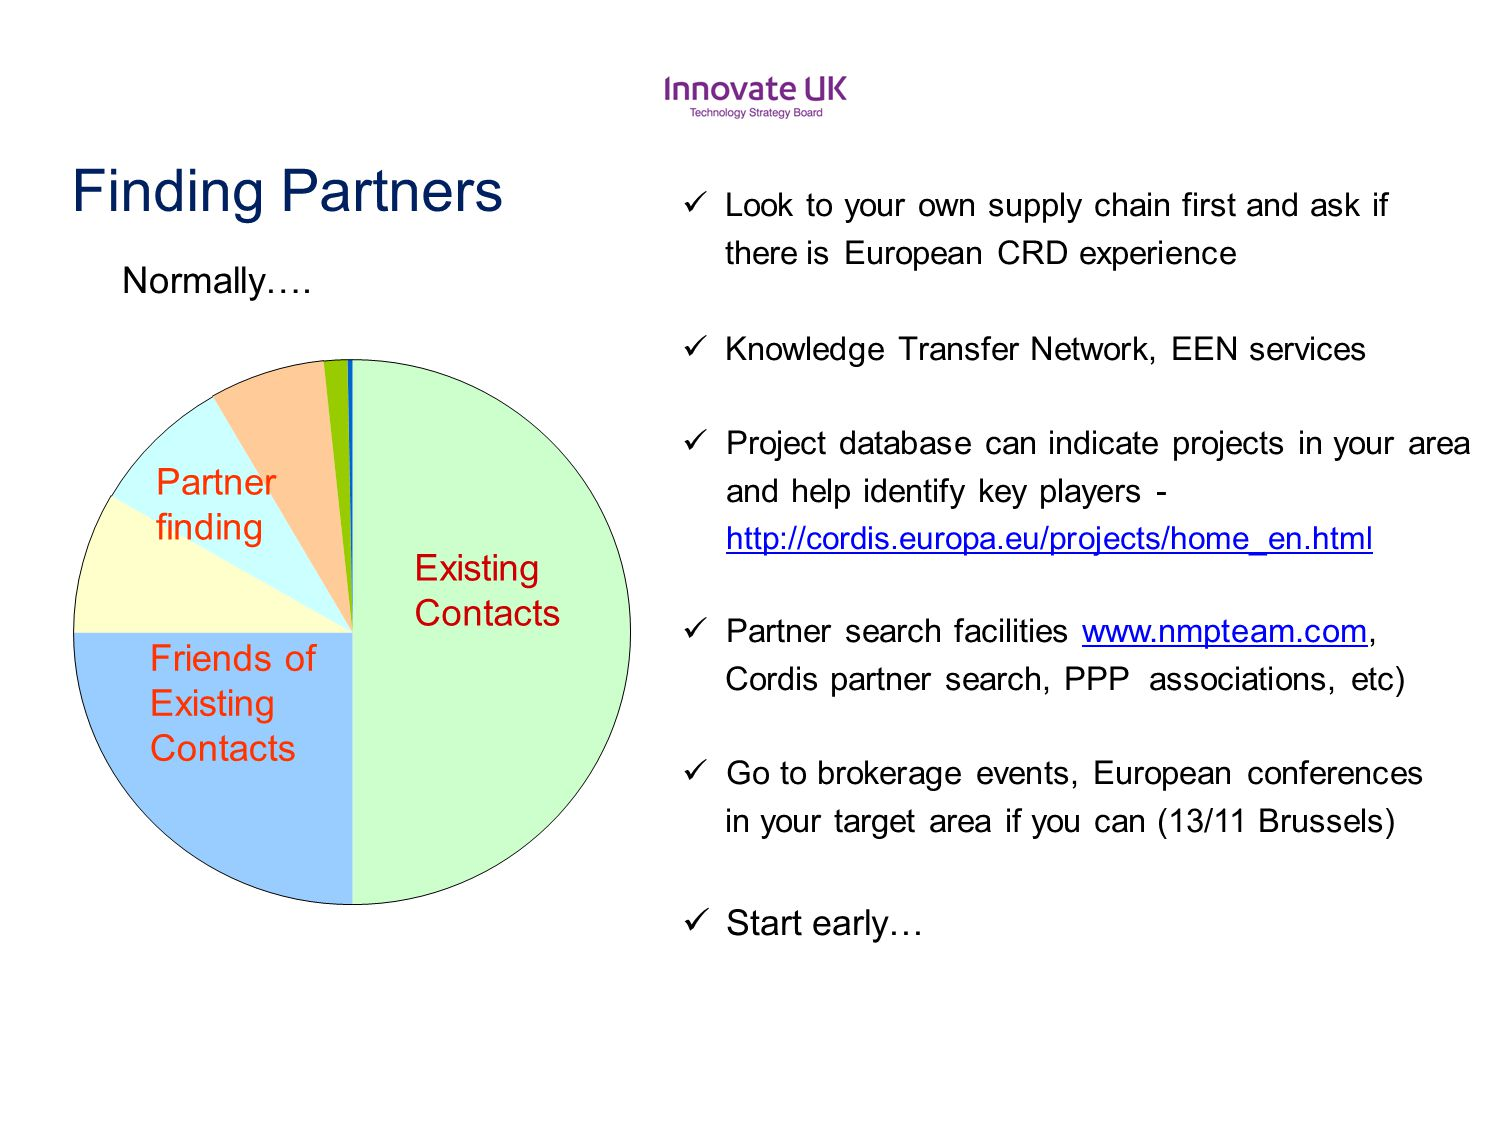 Finding Partners Existing Contacts Friends of Existing Contacts Partner finding Normally…. Look to your own supply chain first and ask if there.is Eur